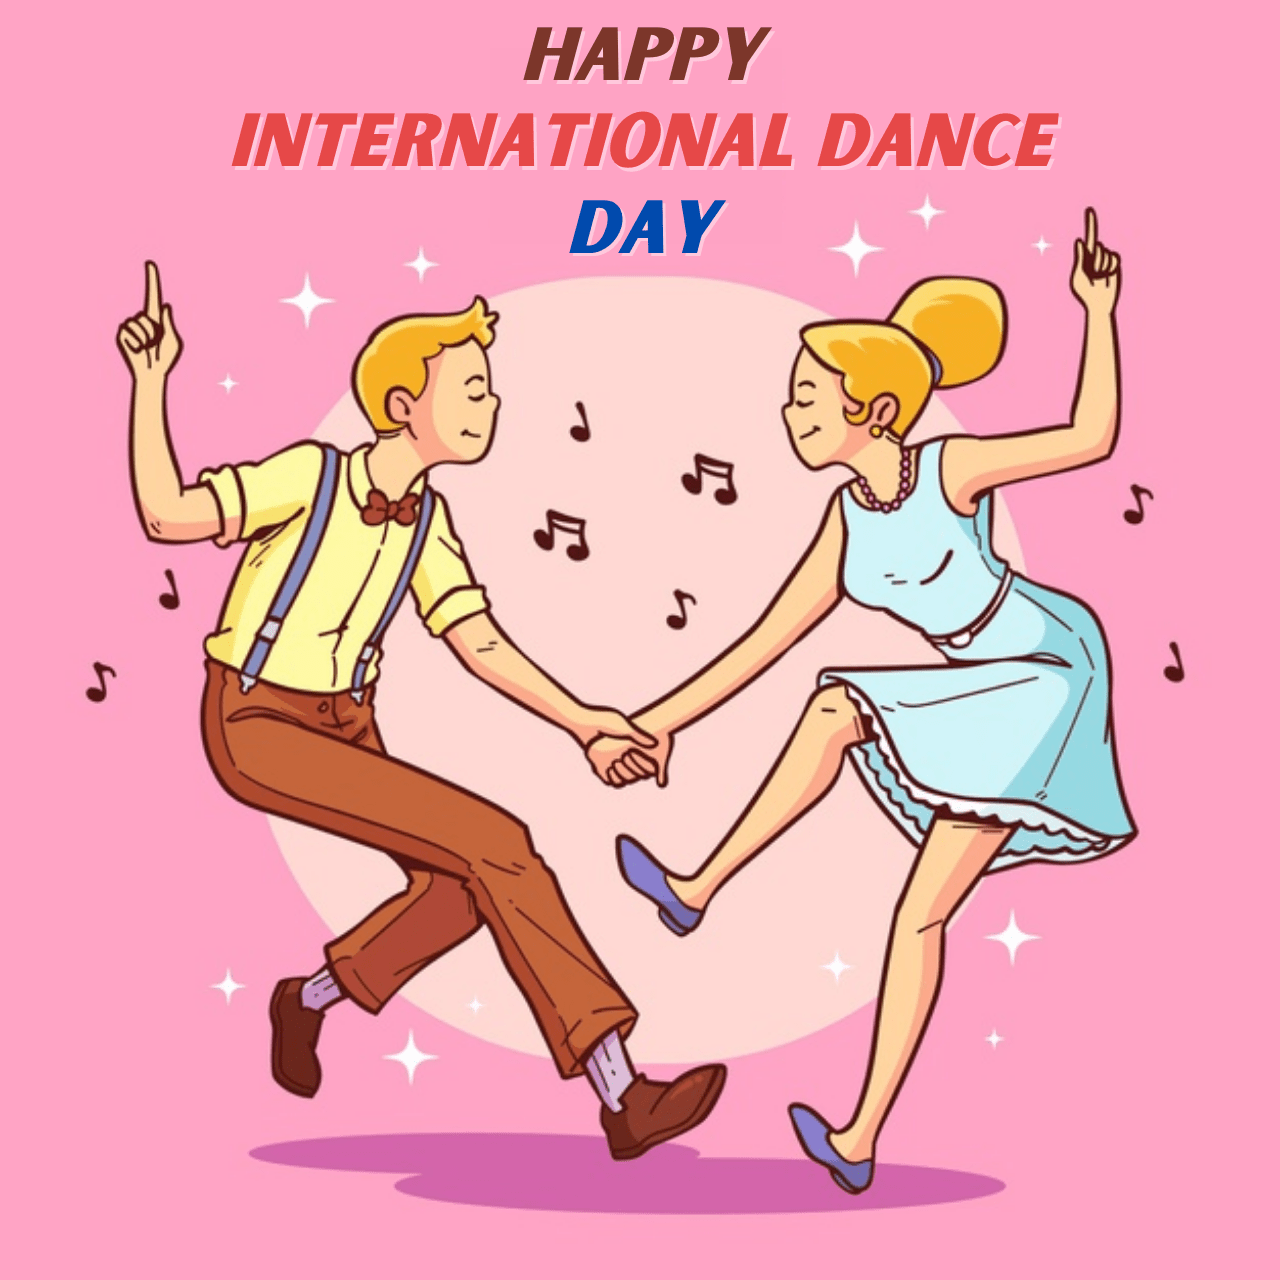 Happy International Dance Day 2021 Wishes, Messages, Greetings, Quotes, and Images